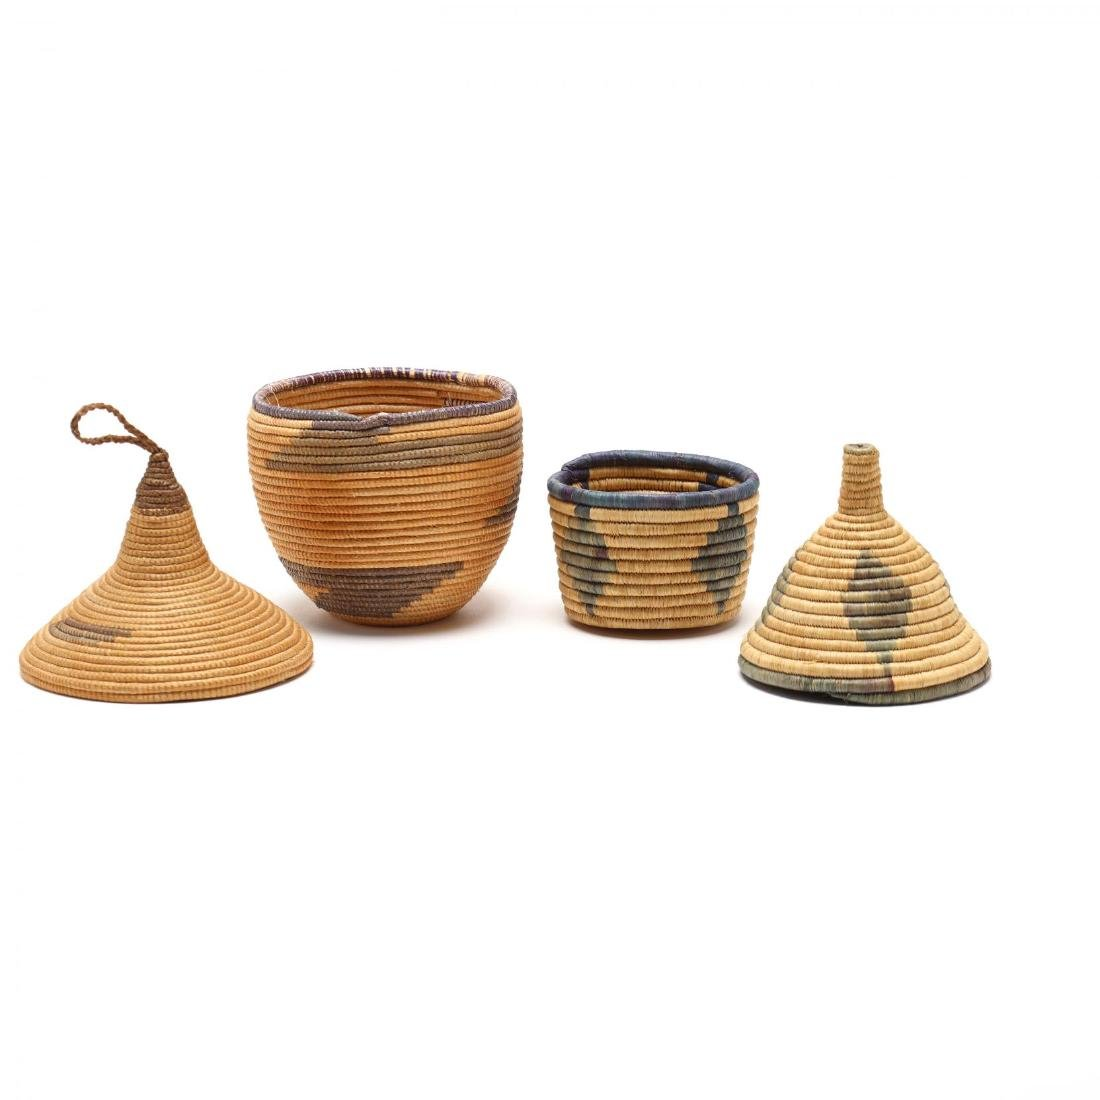 Two African Lidded Tutsi Baskets - 3